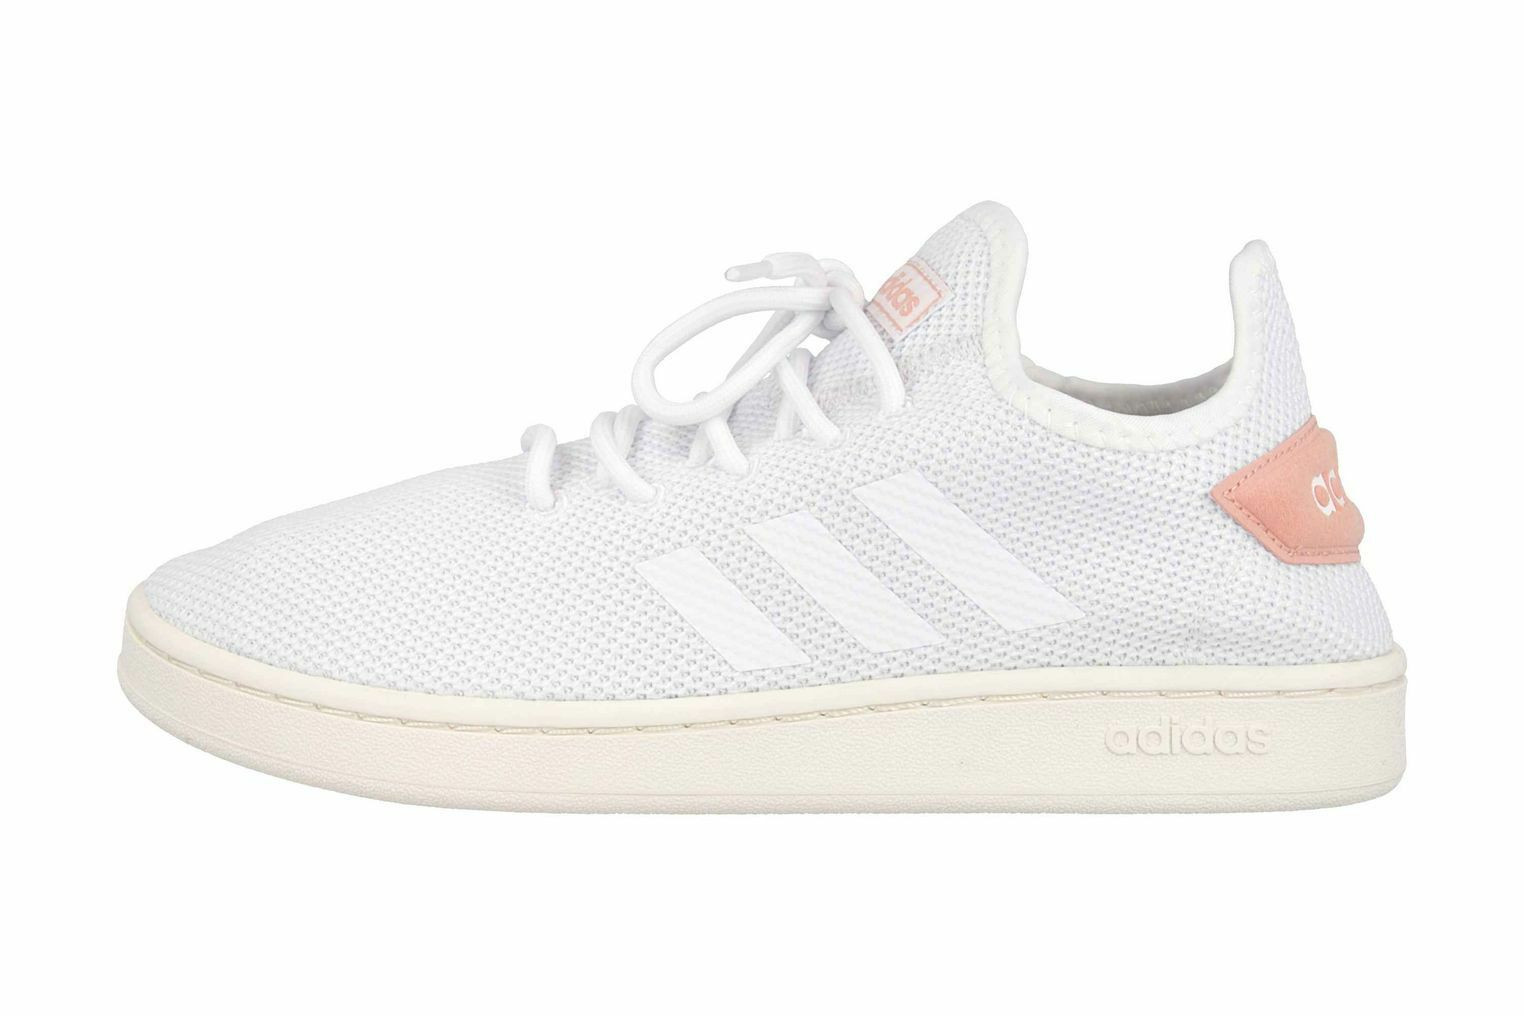 Adidas Court adapt sneaker in oversize white F36476 large women's shoes